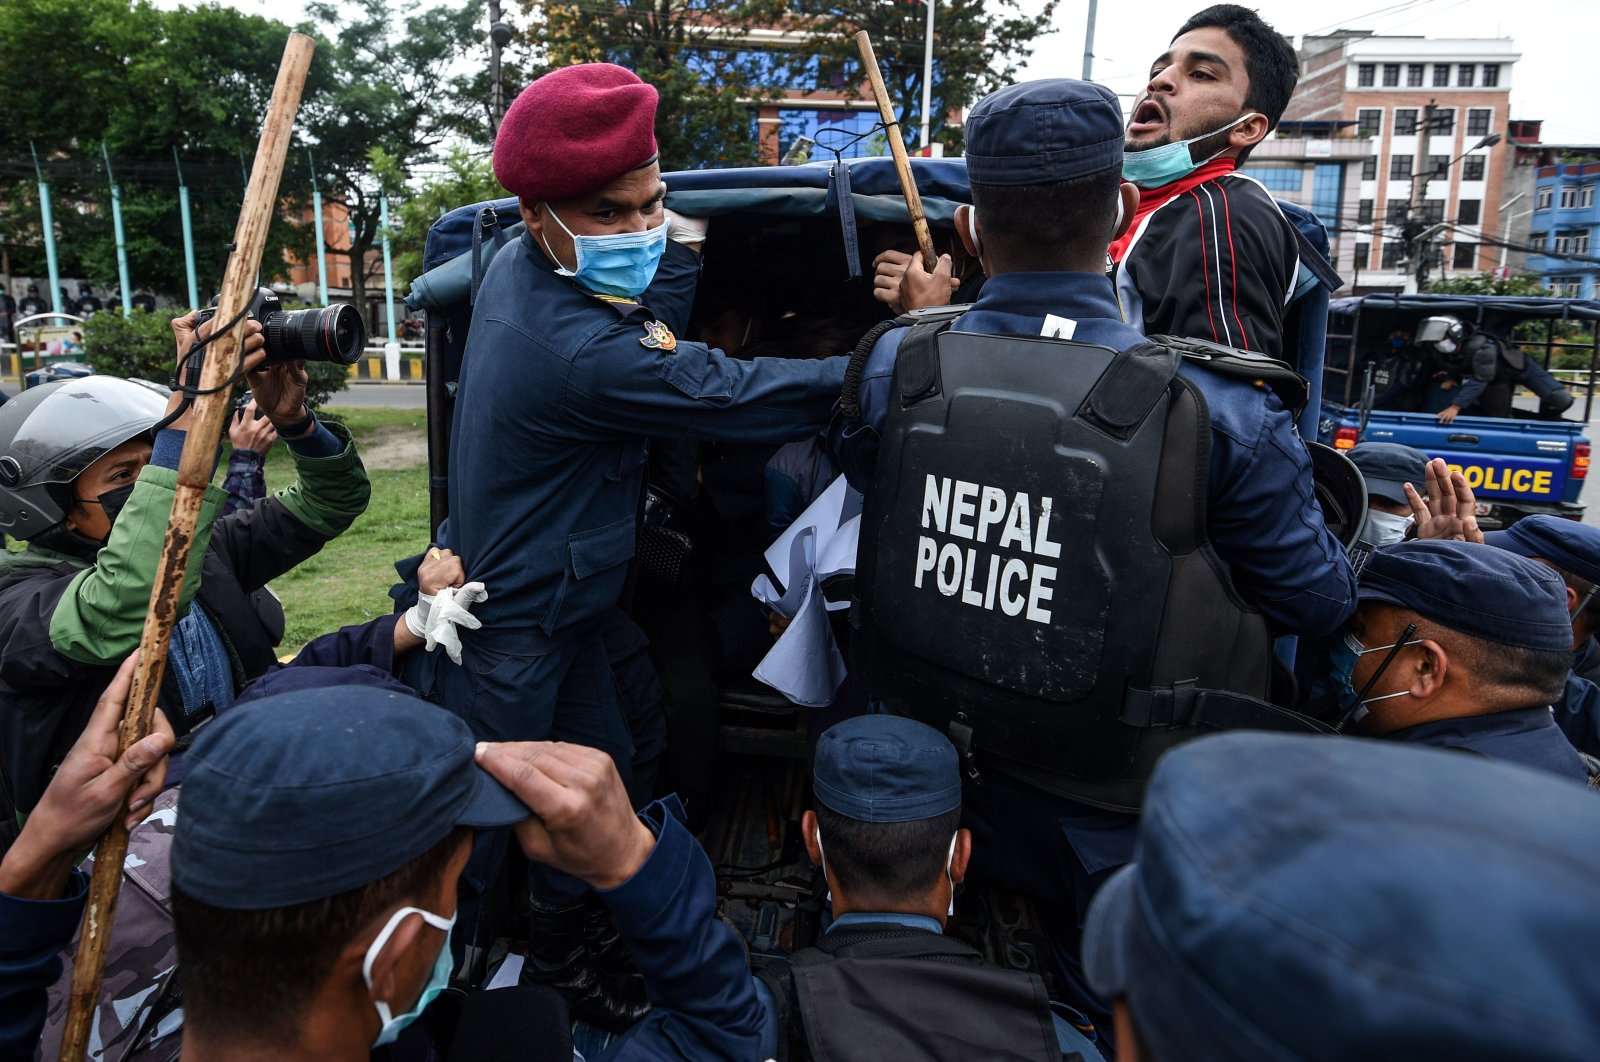 Police detain demonstrators during a protest against India's newly inaugurated link road to the Chinese border, Kathmandu, Nepal, May 10, 2020. (Reuters Photo)